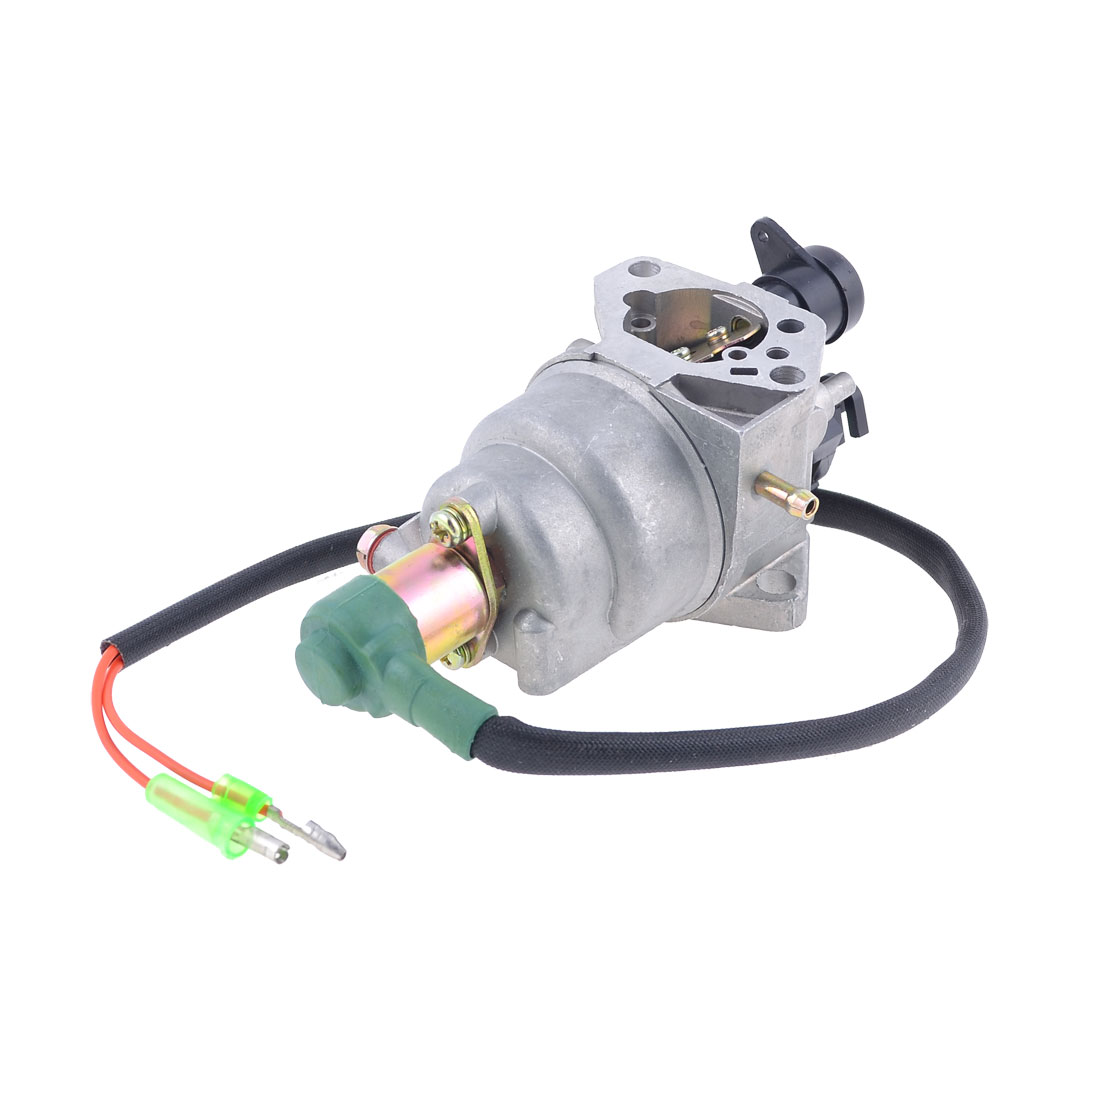 Generator Carb Carburetor Parts for China Made 188 Engine Motor